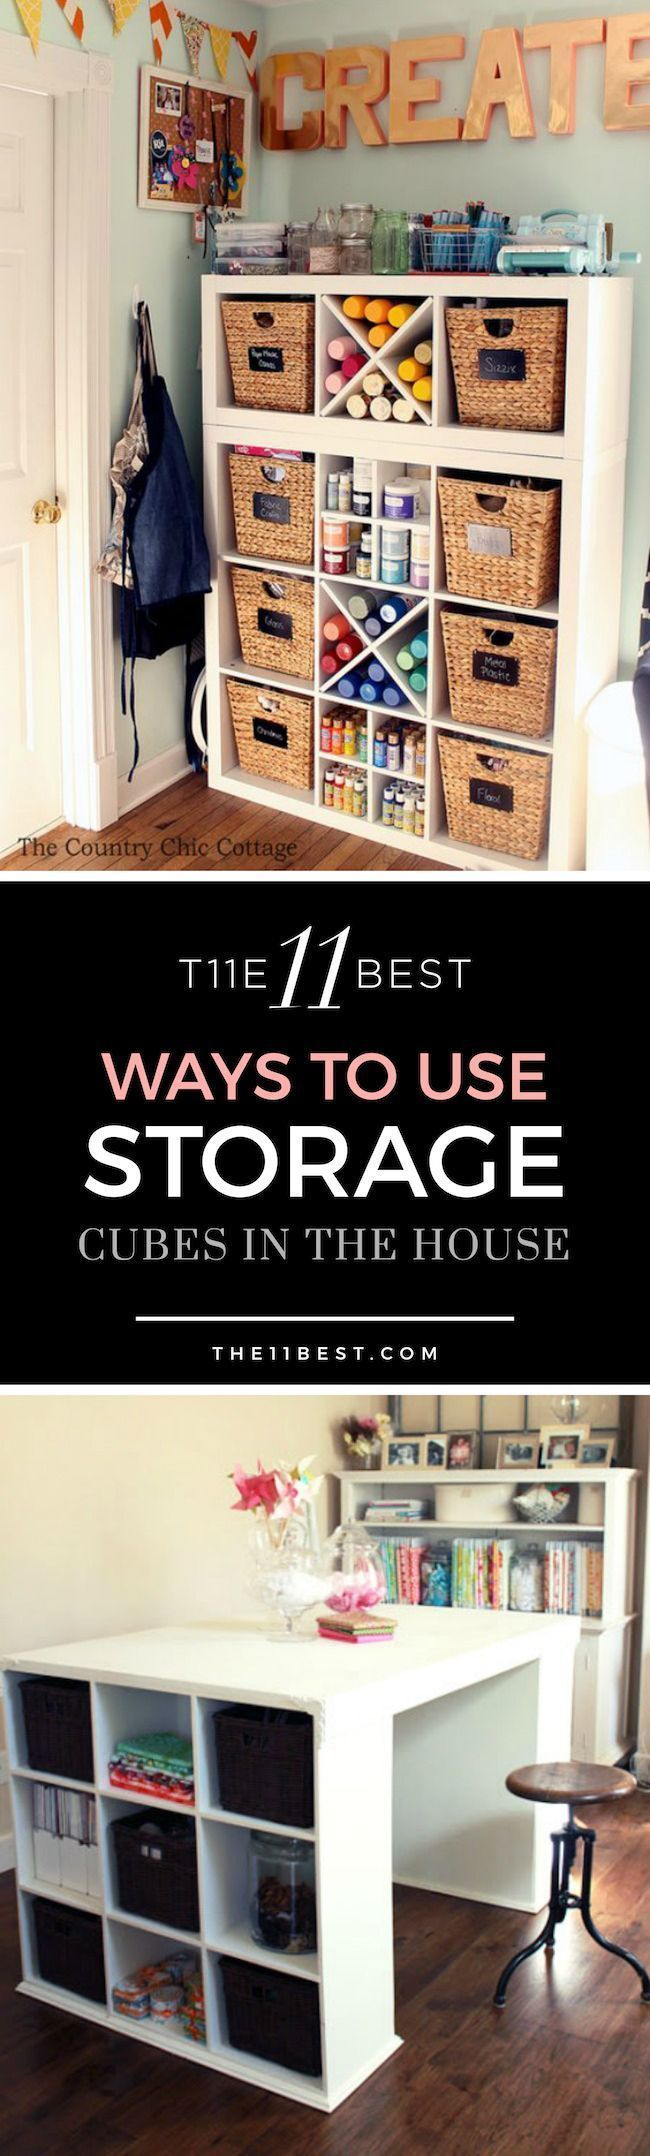 The 11 Best Ways To Use Storage Cubes